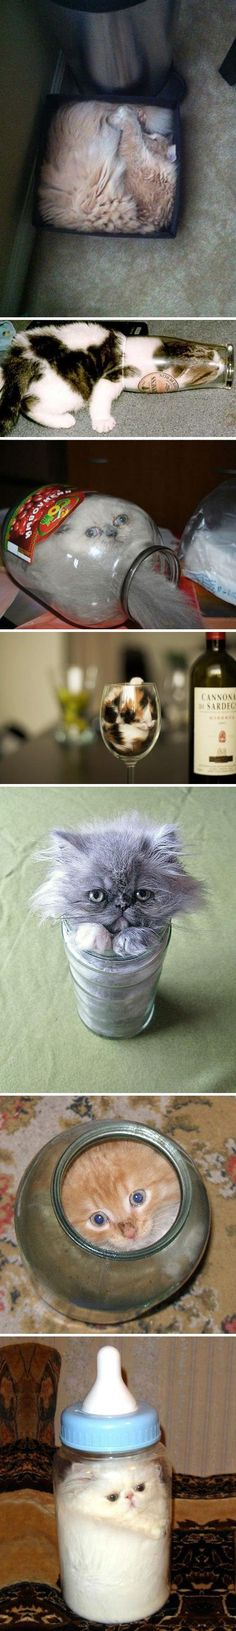 Why cats are liquids // funny pictures - funny photos - funny images - funny pics - funny quotes - #lol #humor #funnypictures